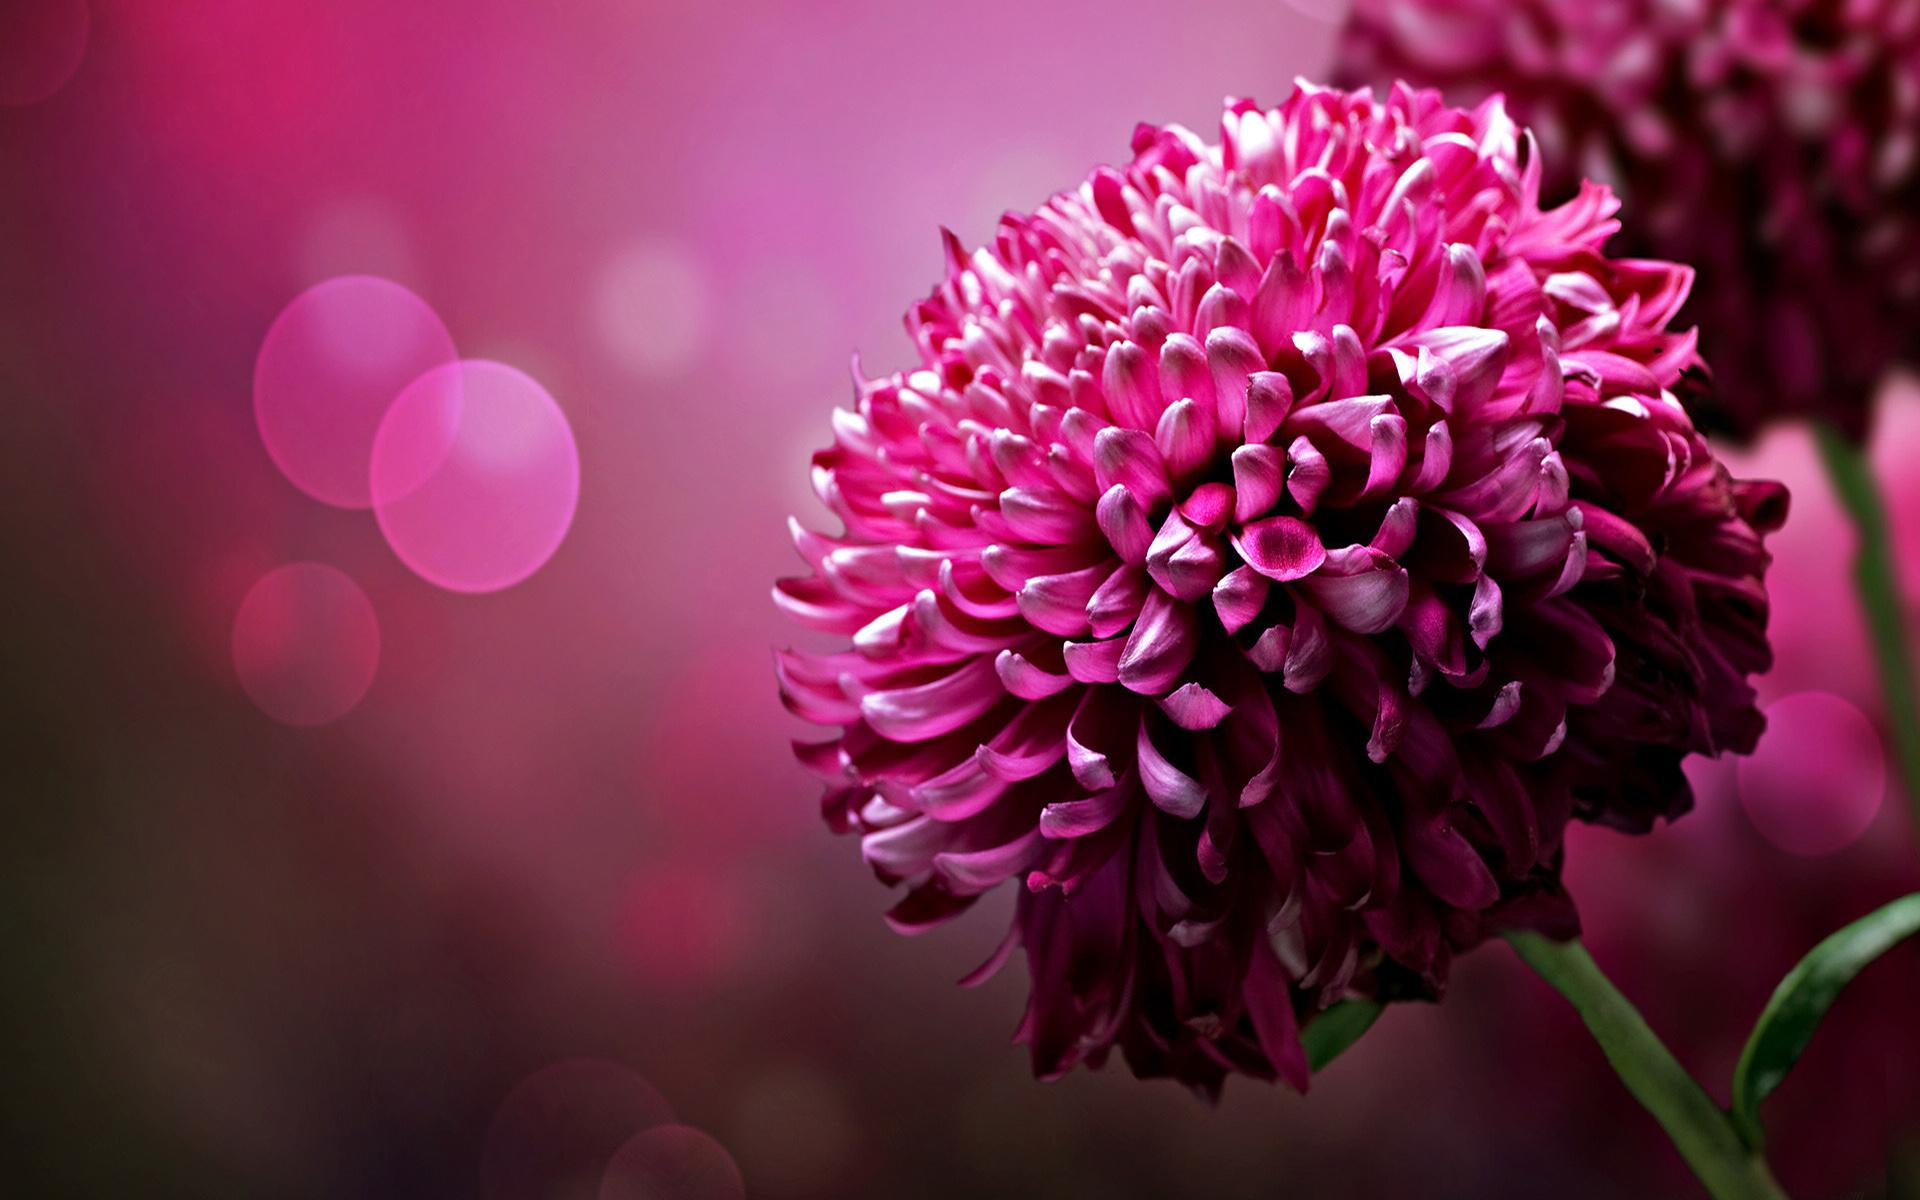 Desktop Background Flowers Wallpapers